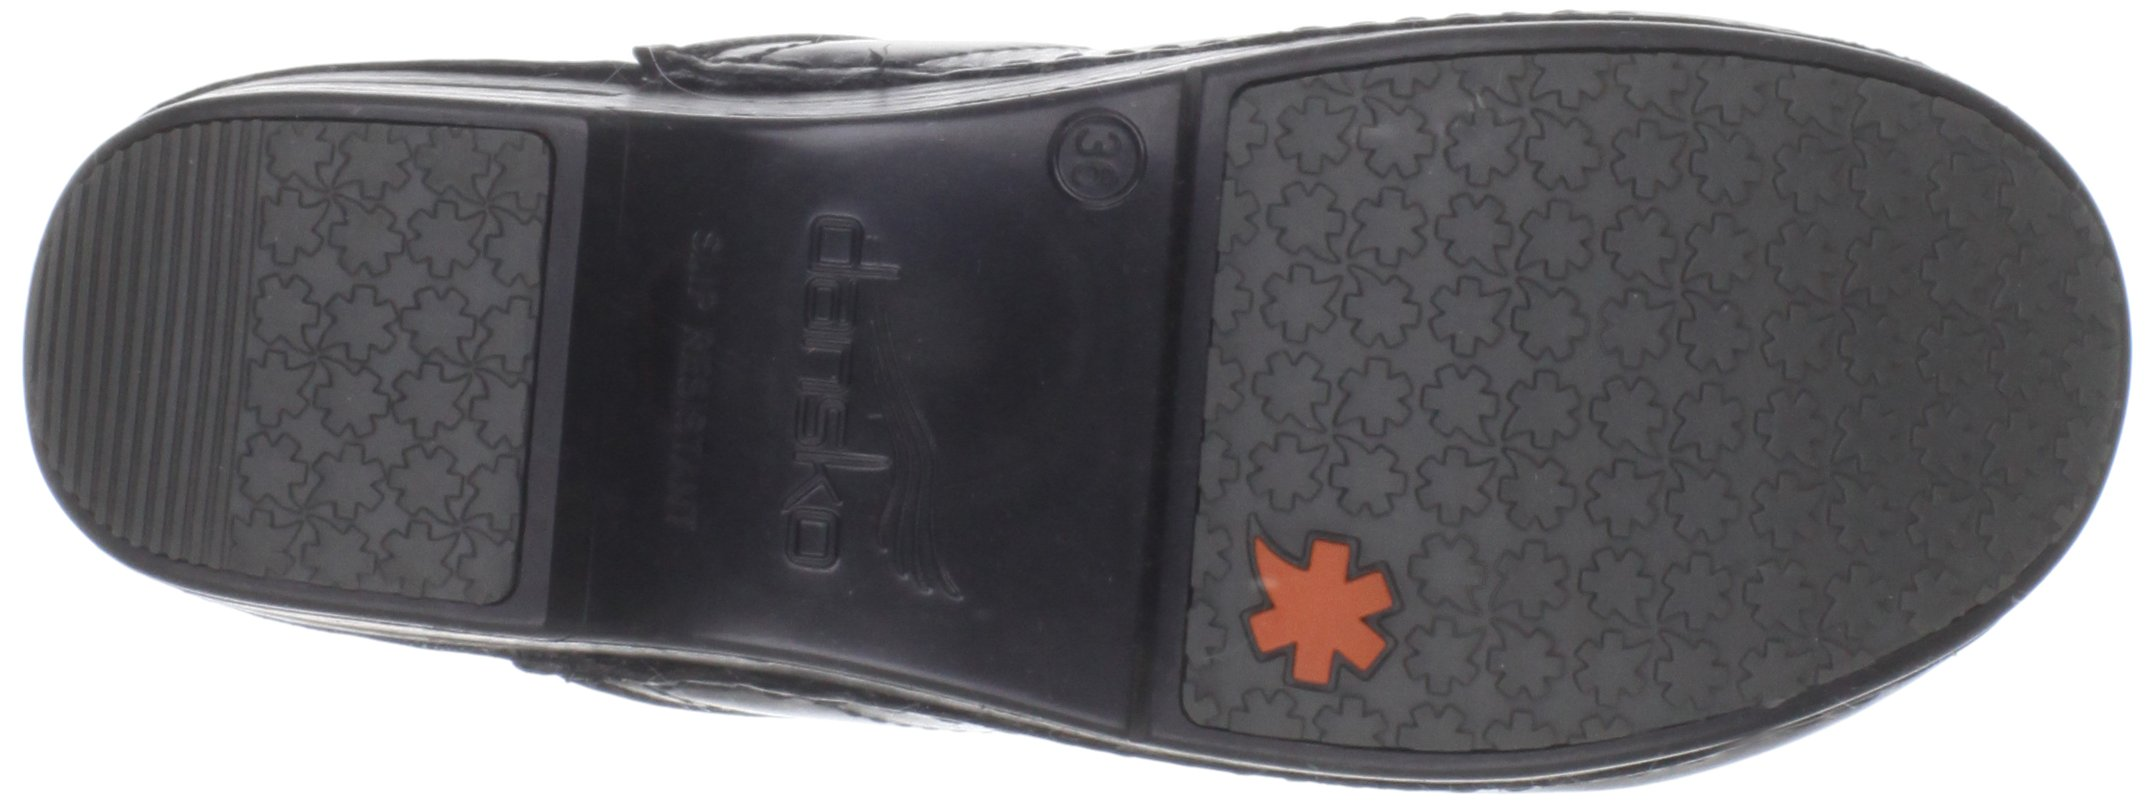 Dansko Women's Pro XP Clog,Ebony,35 EU/4.5-5 M US by Dansko (Image #3)